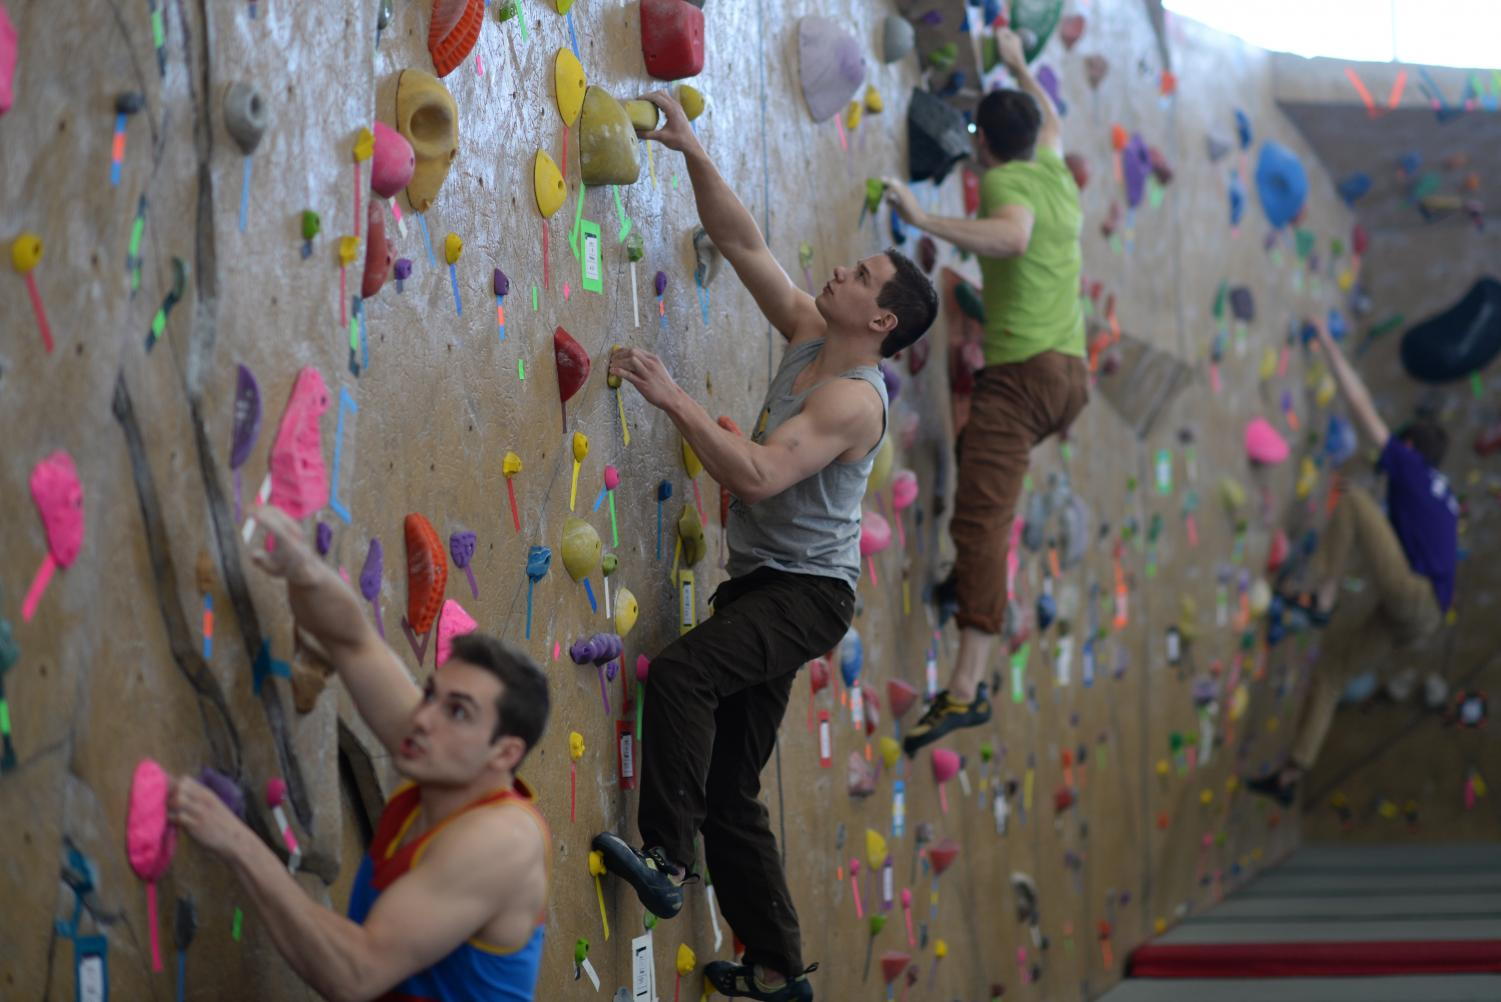 Contestants climb different routes during a bouldering competition at the UREC.